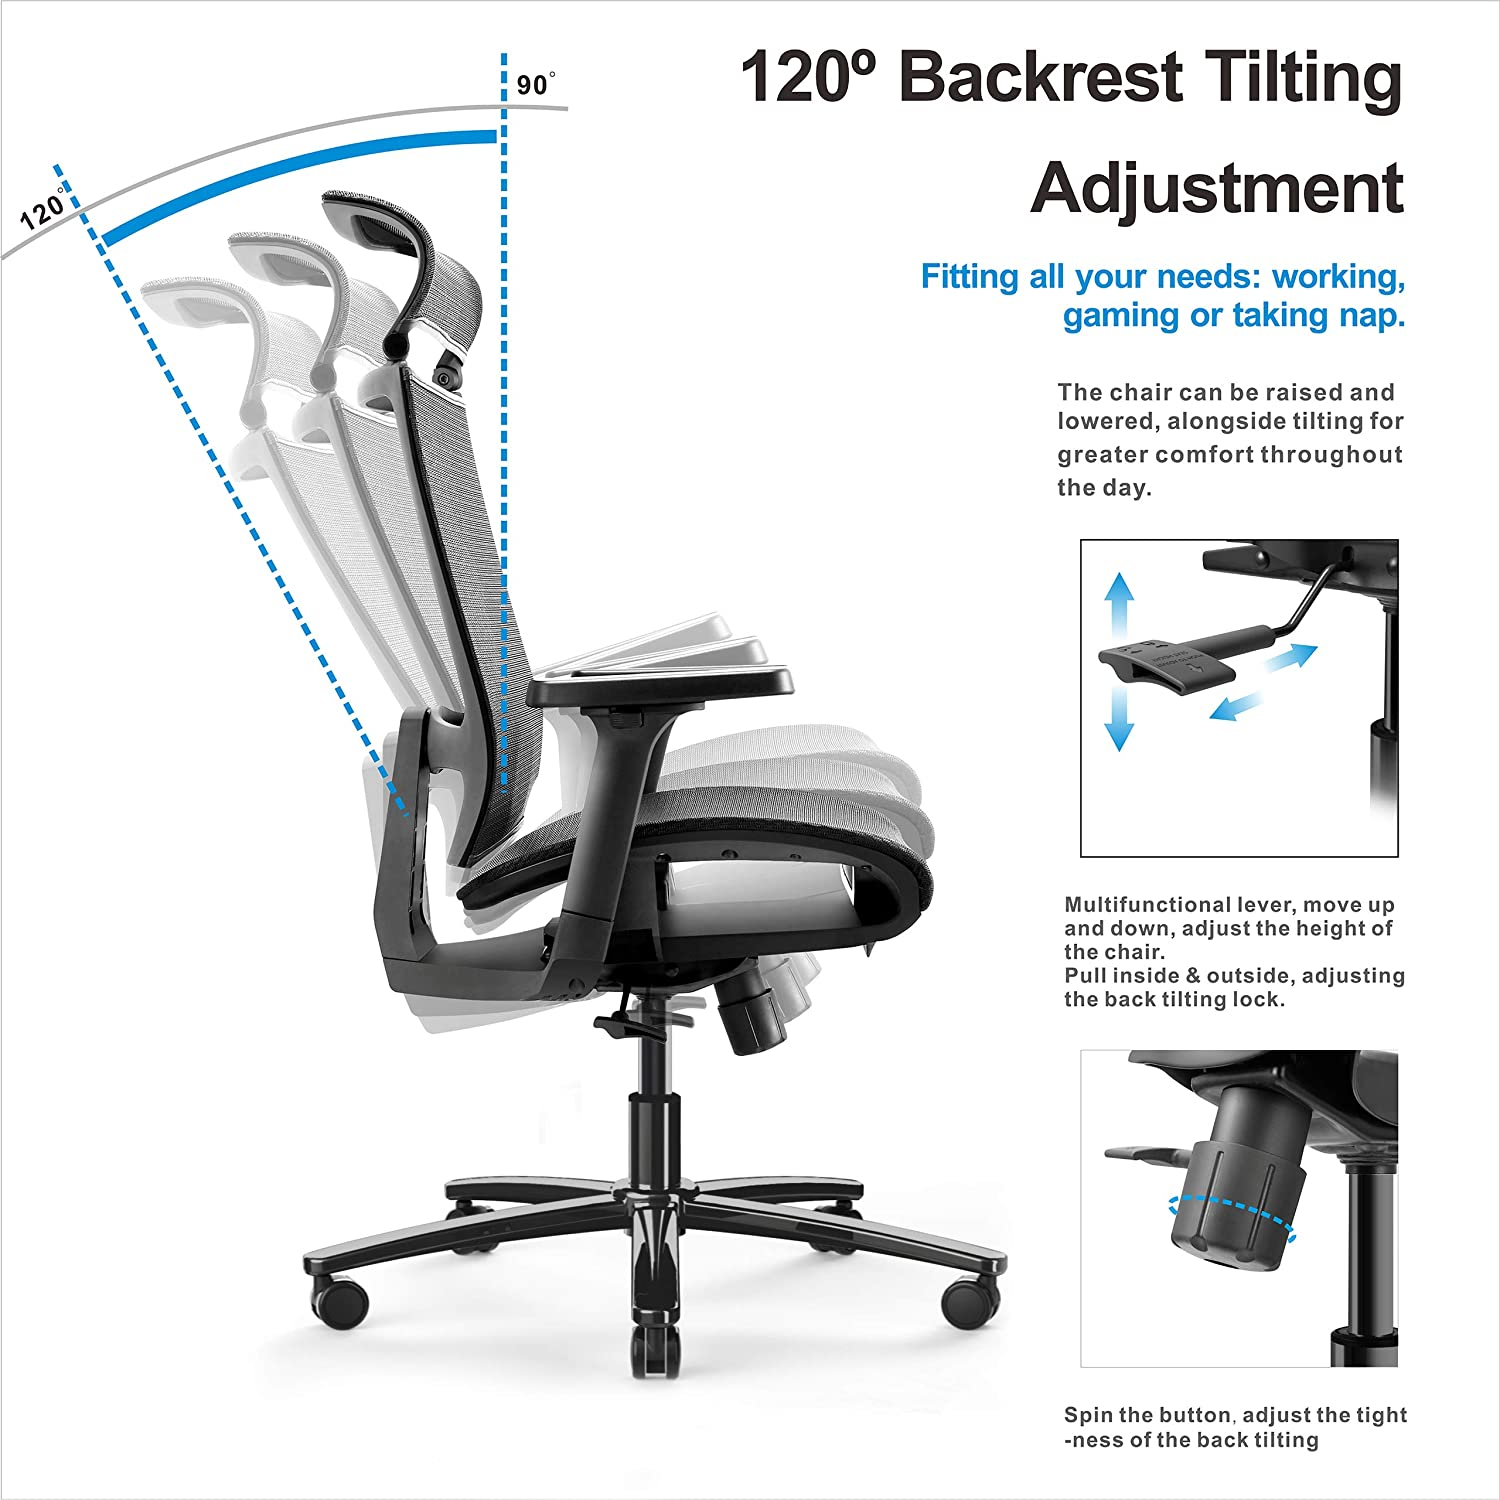 Home Office Desk Chair with 3D Arm Rests /& Adjustable Headrest Ergonomic Office Chair with Breathable Mesh Seat Height- Reclines High Back Office Chair with Ergonomic Design